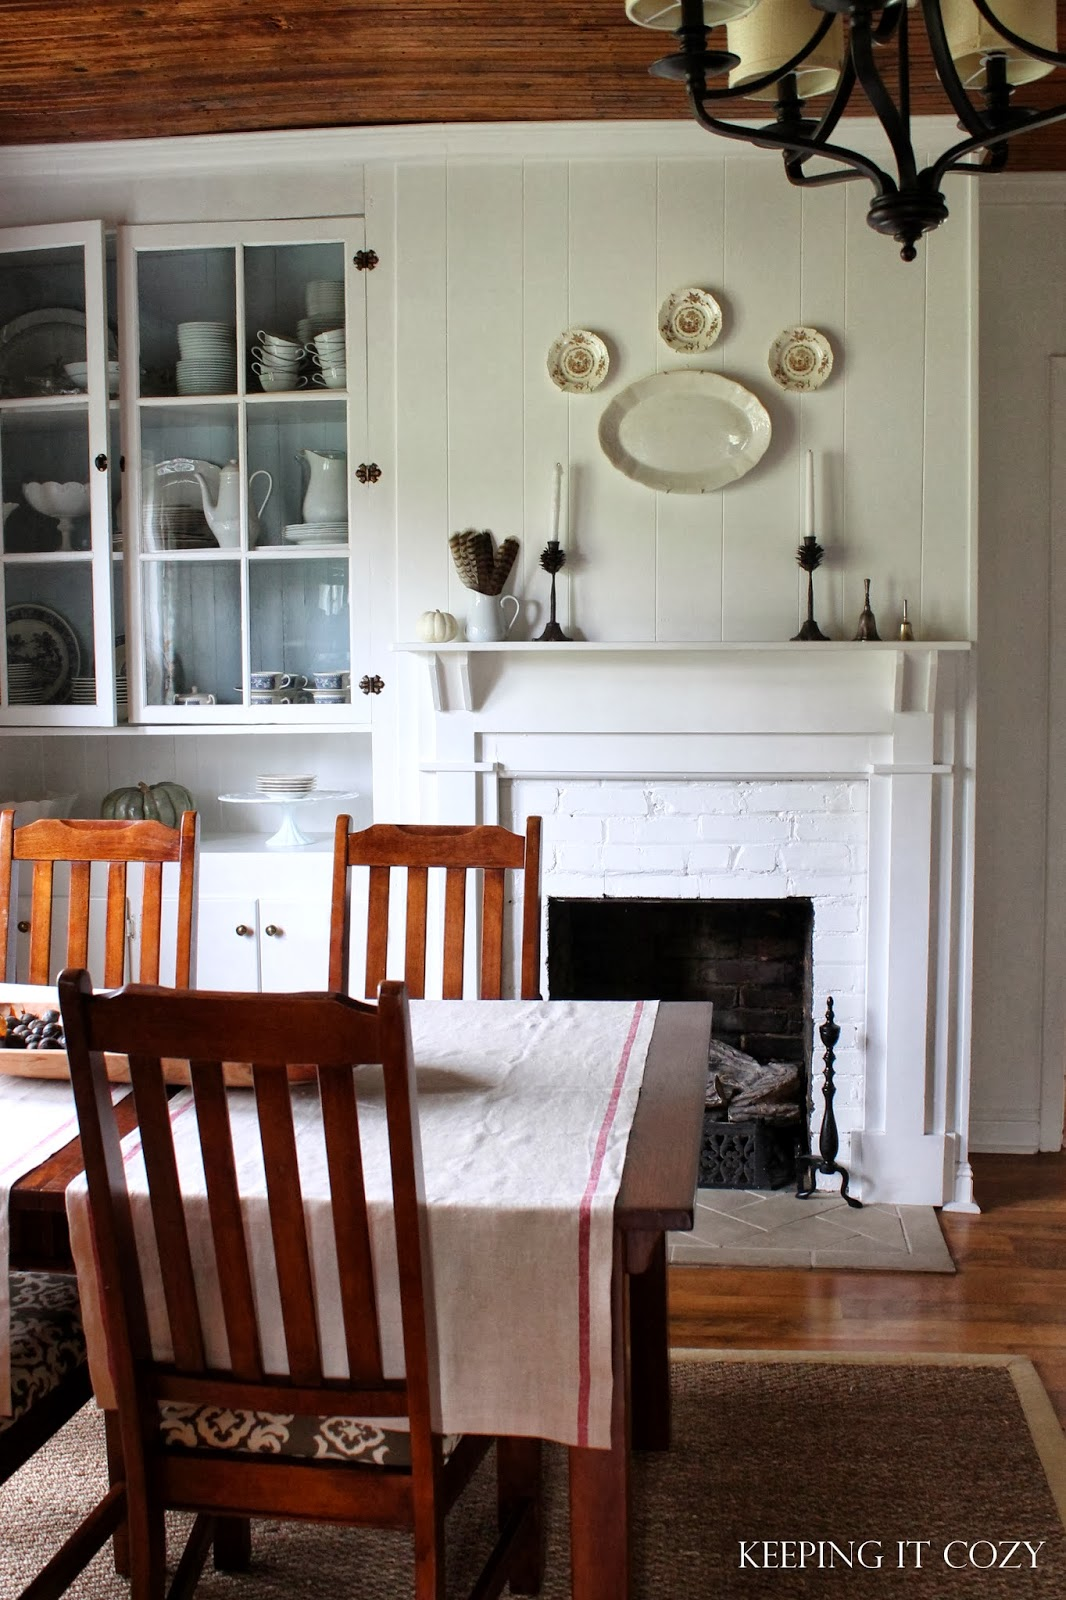 Keeping It Cozy: An Autumn Look In The Dining Room